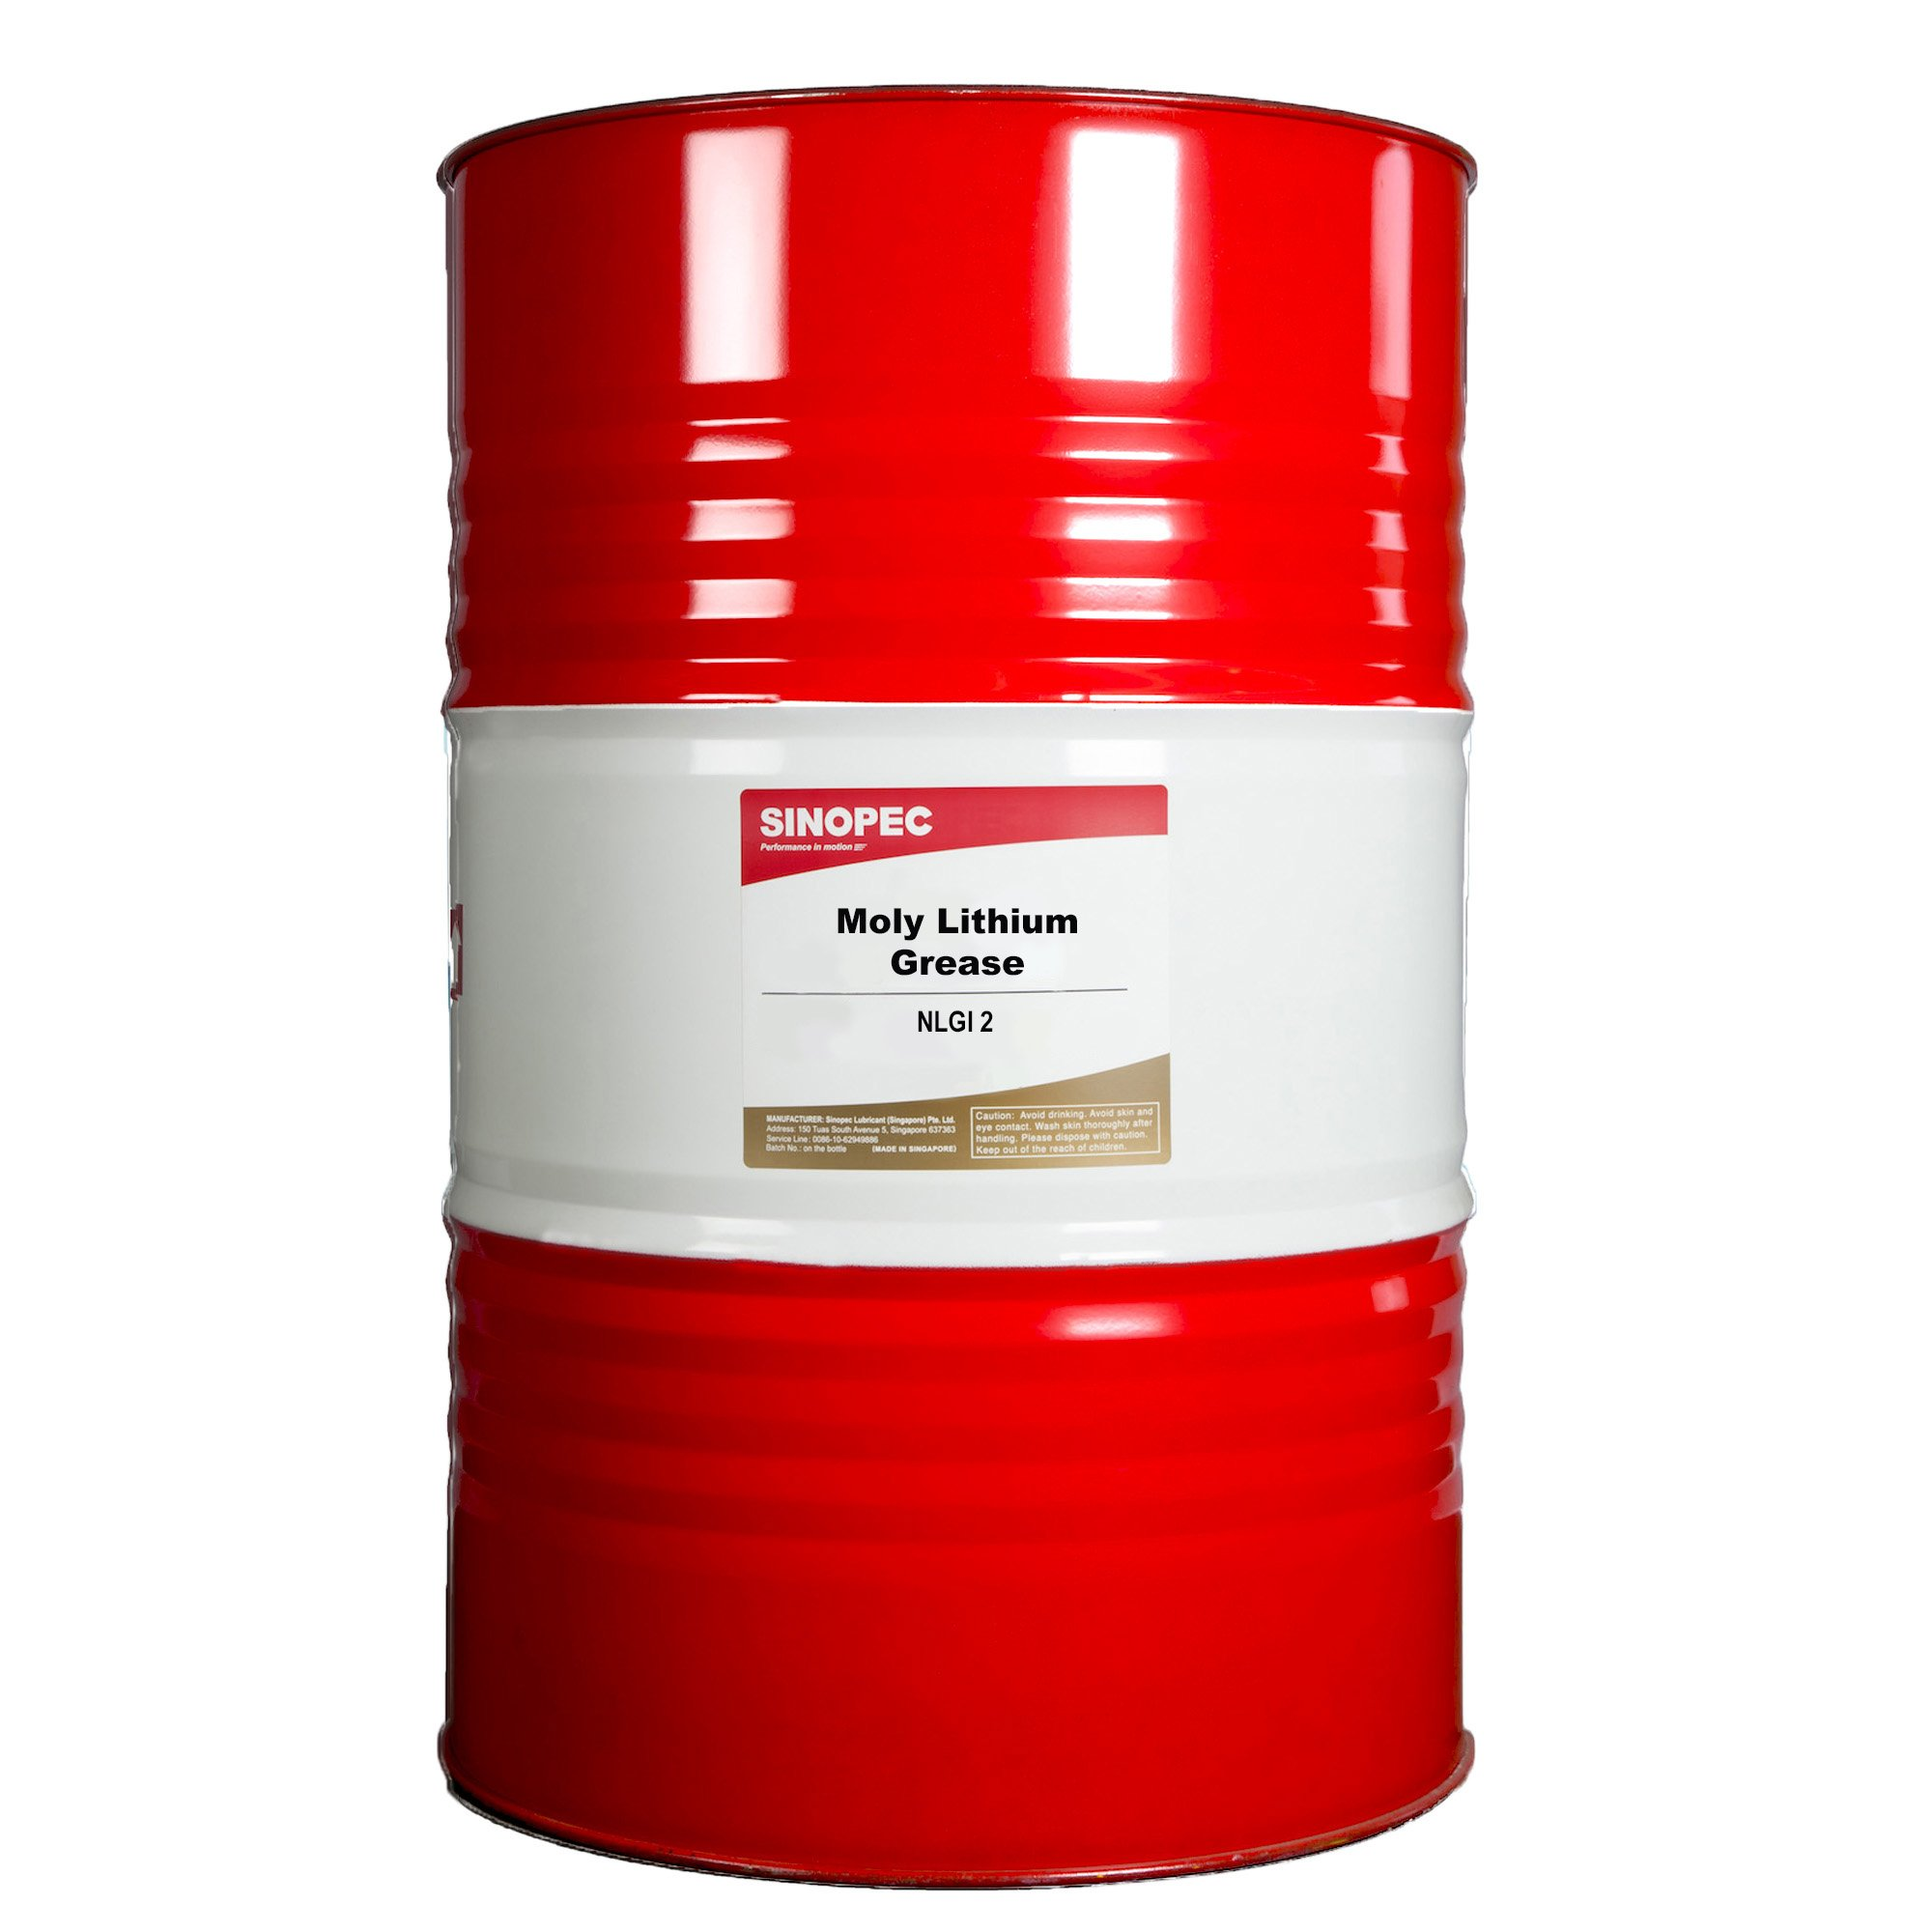 Moly Extreme Pressure Lithium Grease, NLGI 2 - 400LB. (55 Gallon) Drum by Sinopec